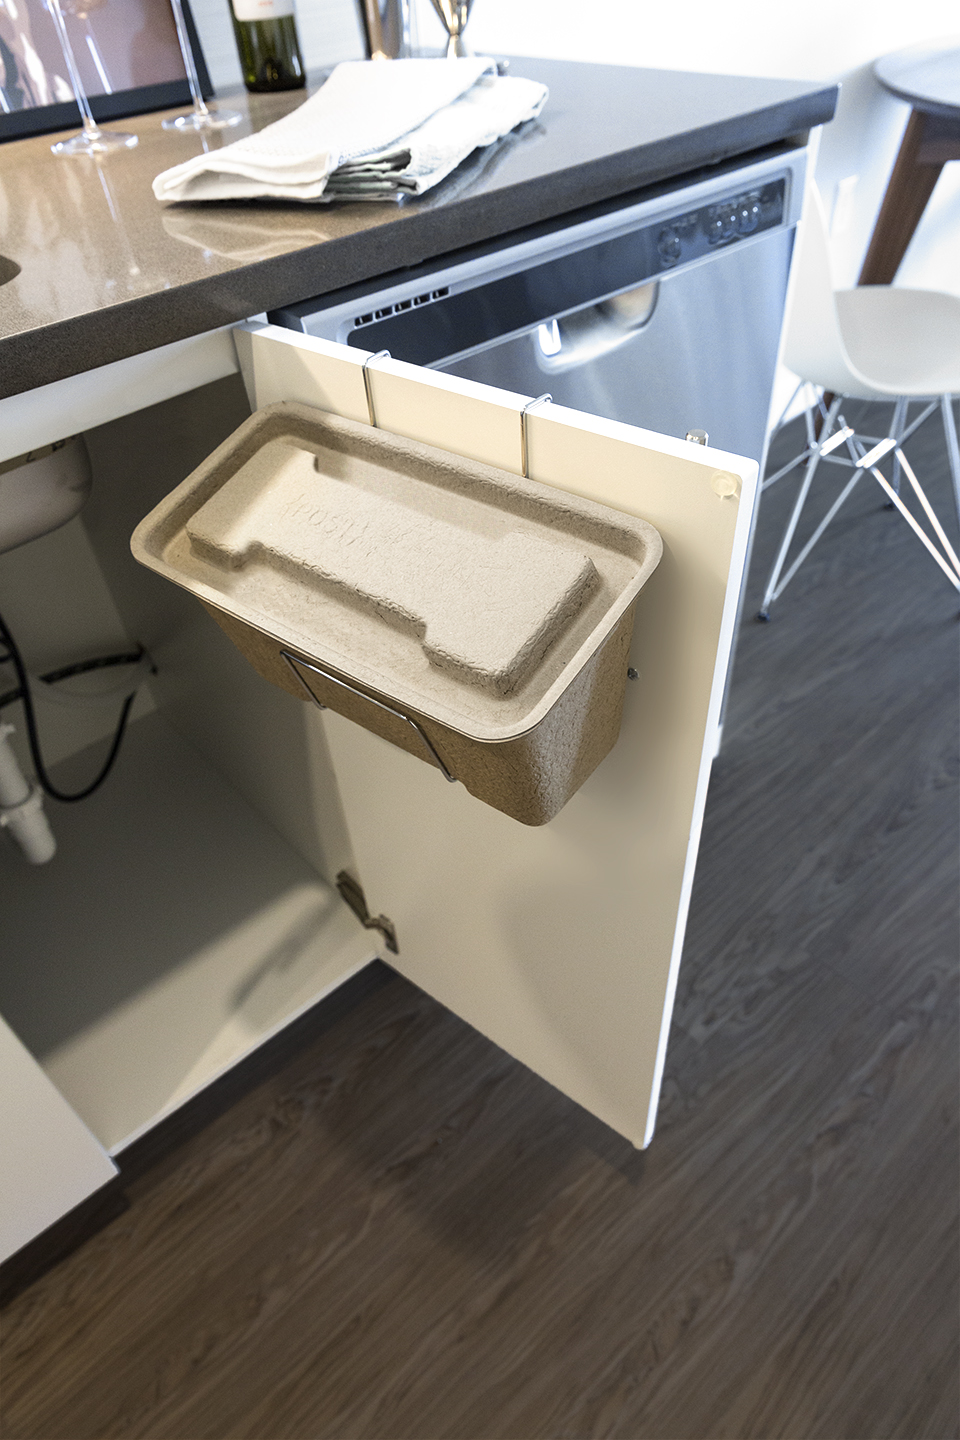 Post Modern kitchen compost bin, undercounter